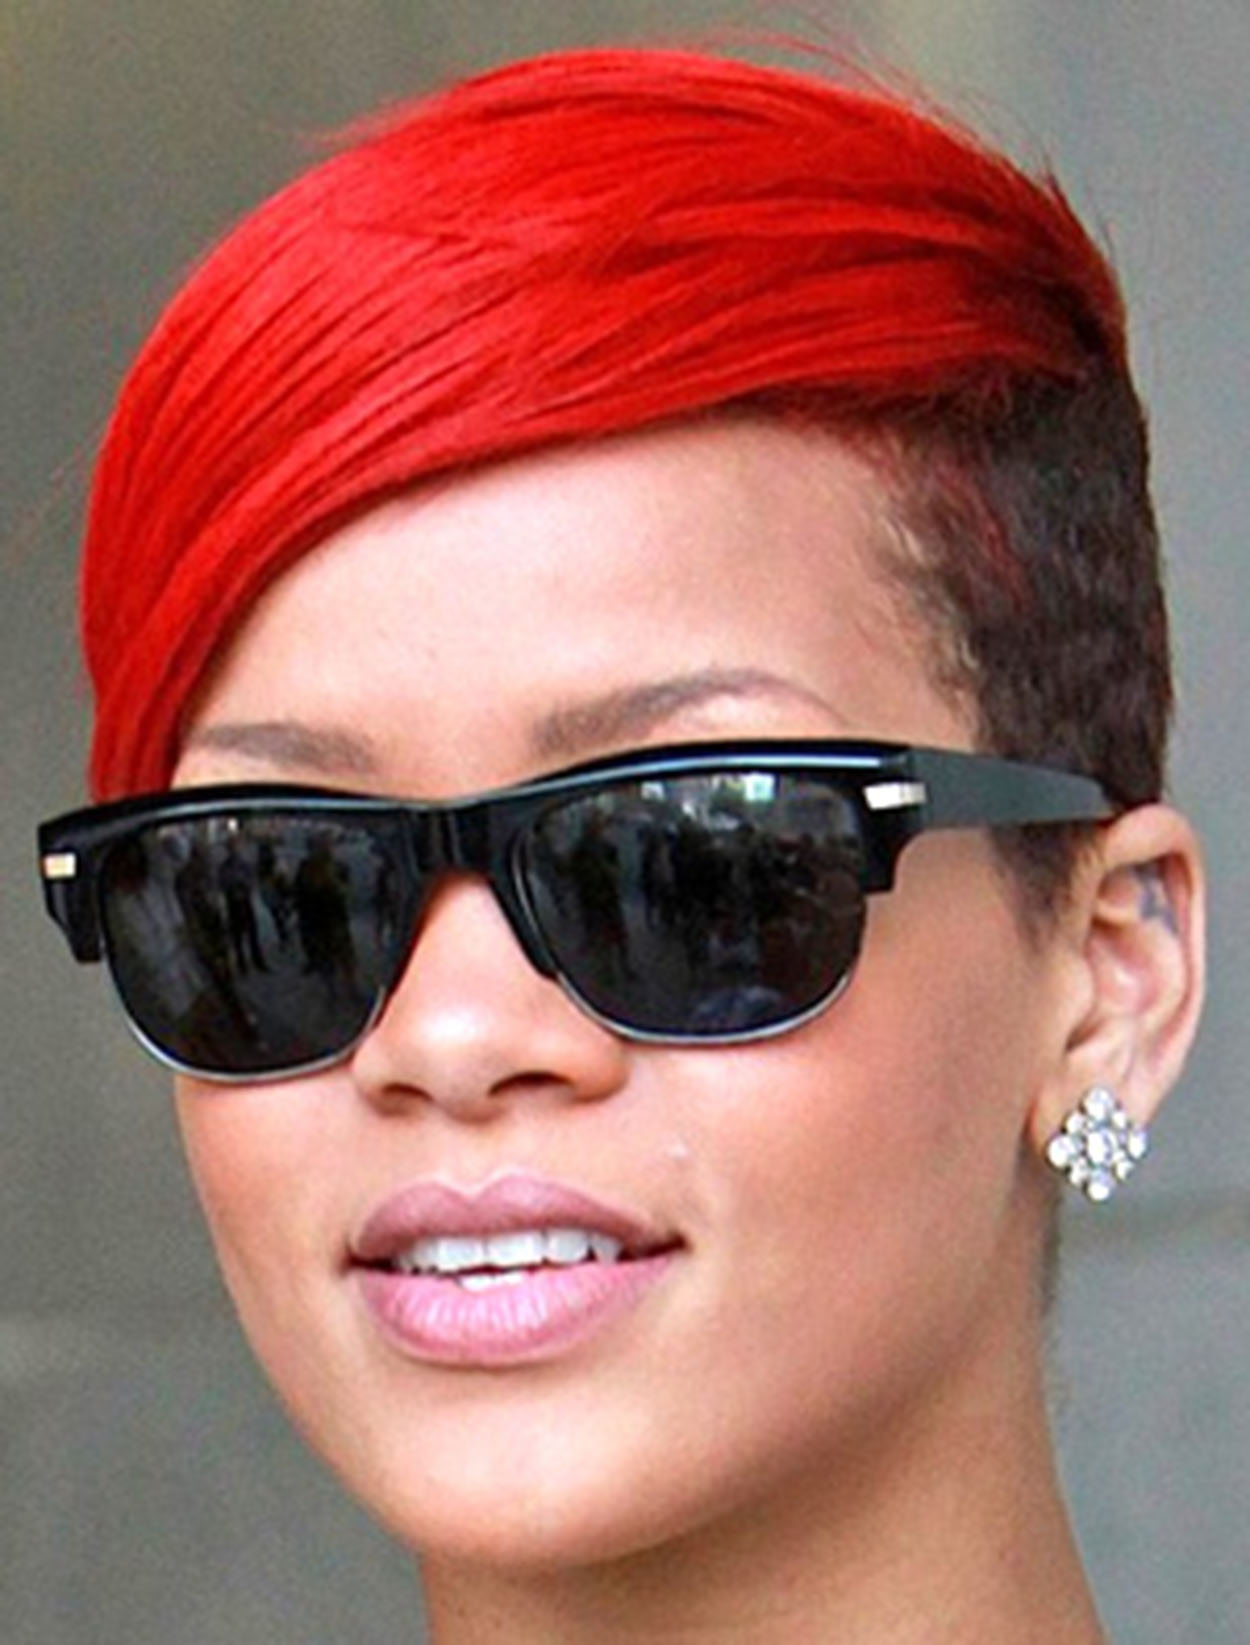 e3c2b27f0b1 17 Celebs Rockin  Their Peepers in Oliver Peoples Eyewear! - Deba Do ...